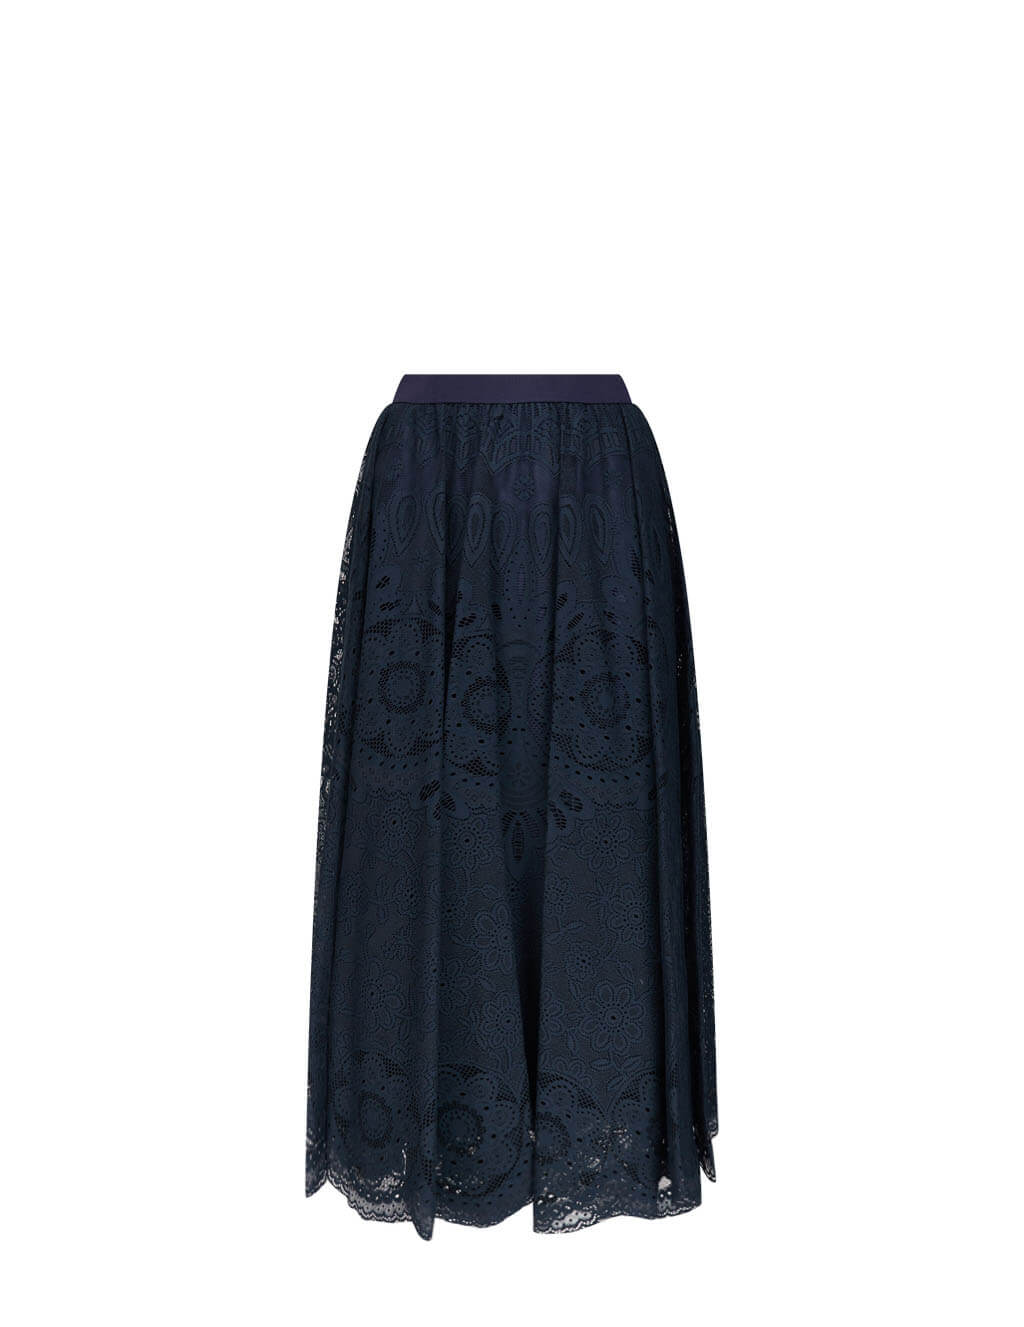 Women's REDValentino Lace Midi Skirt in Navy Blue - VR3RAD4050FB01